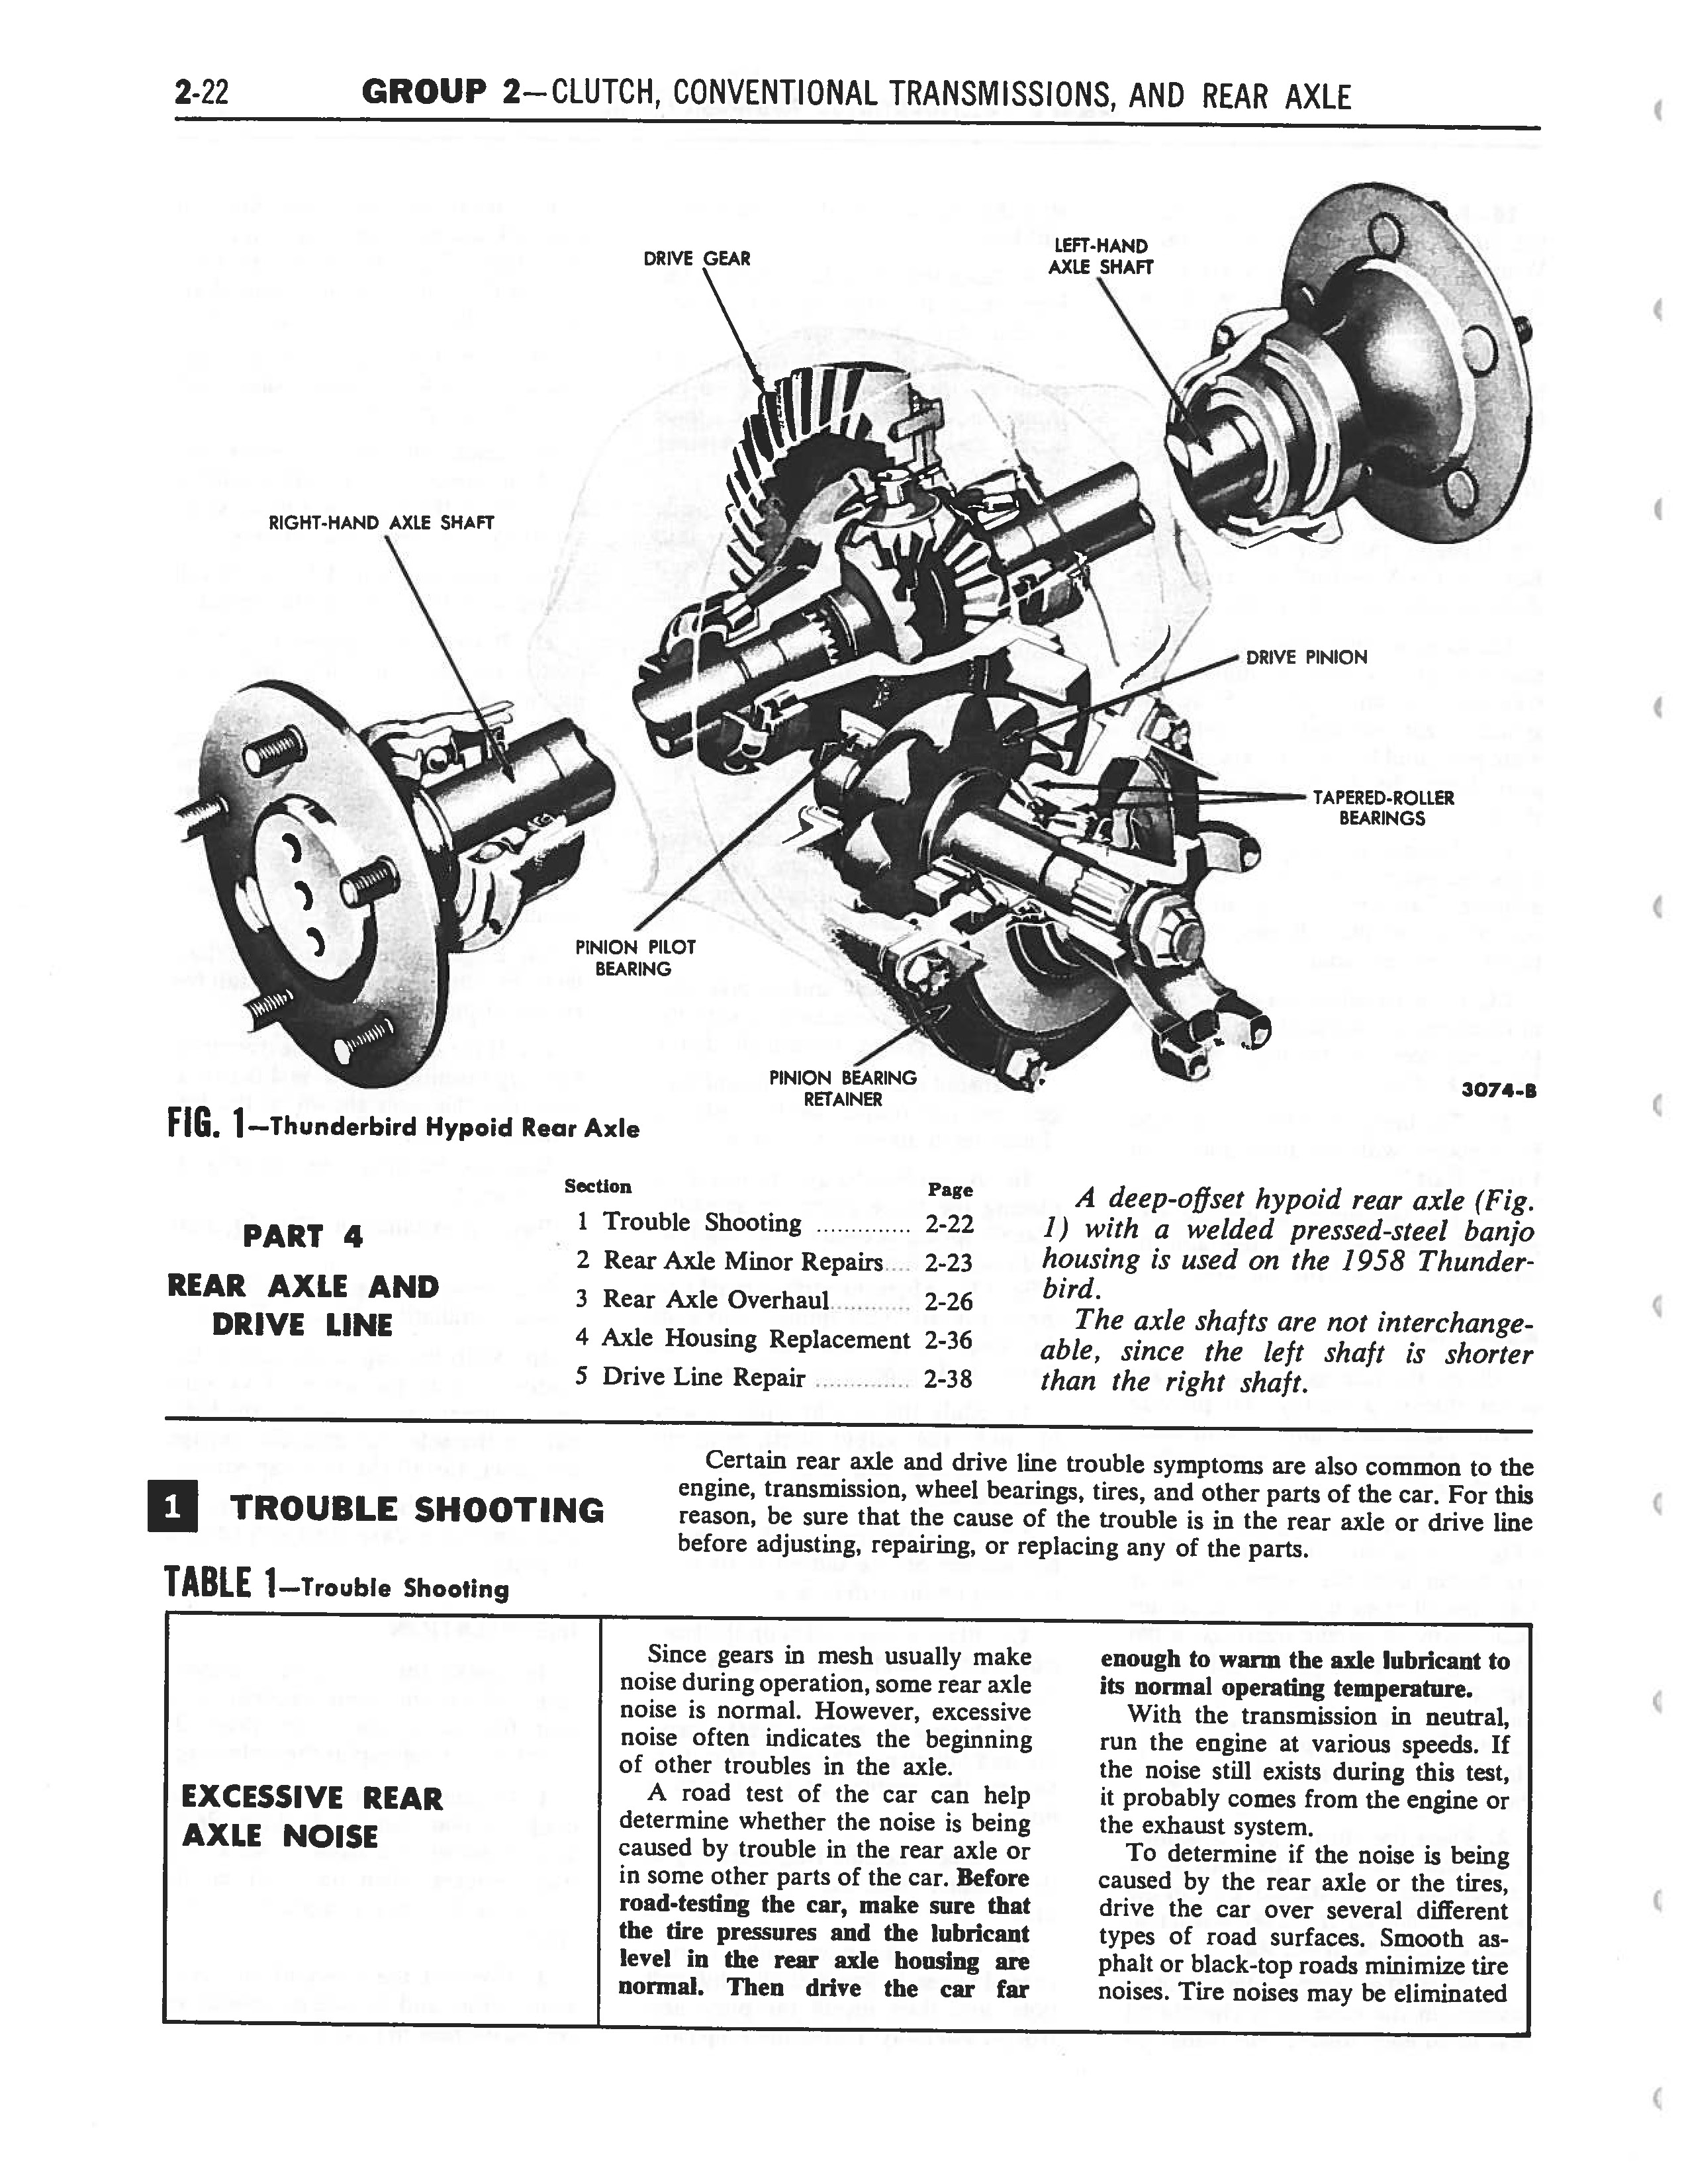 1958 Ford Thunderbird Shop Manual page 108 of 360